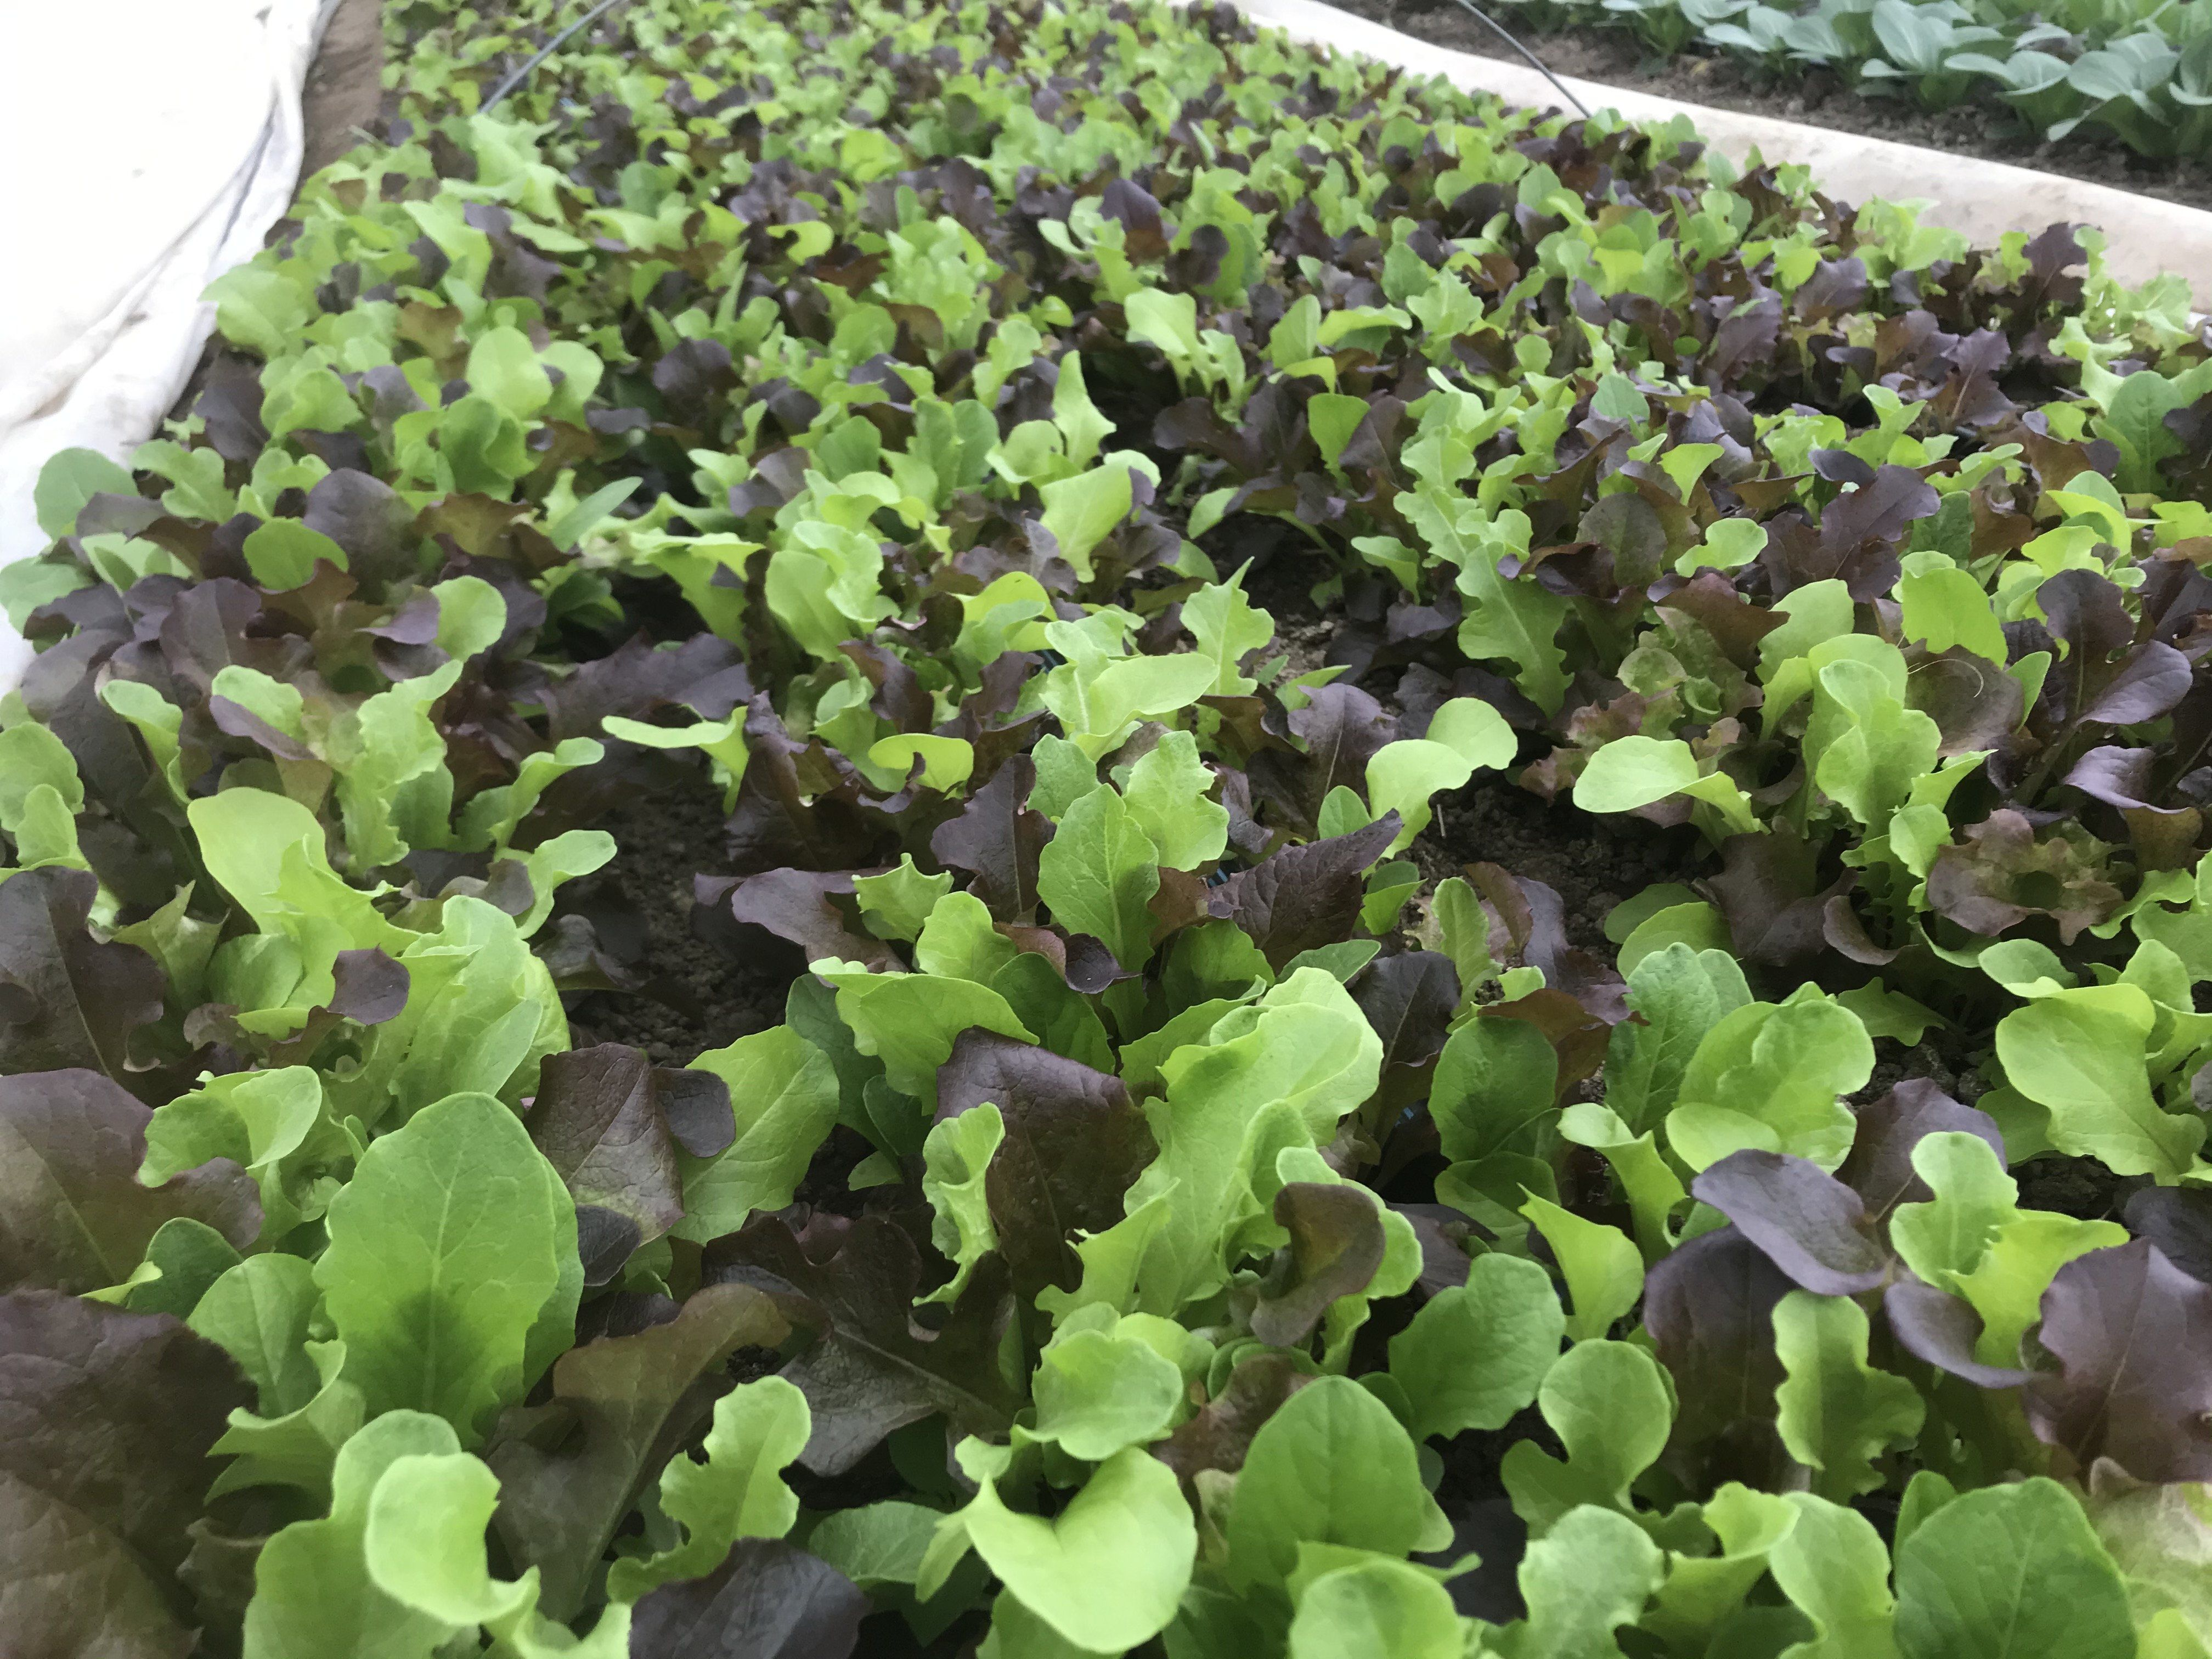 Farm Happenings for March 31, 2020